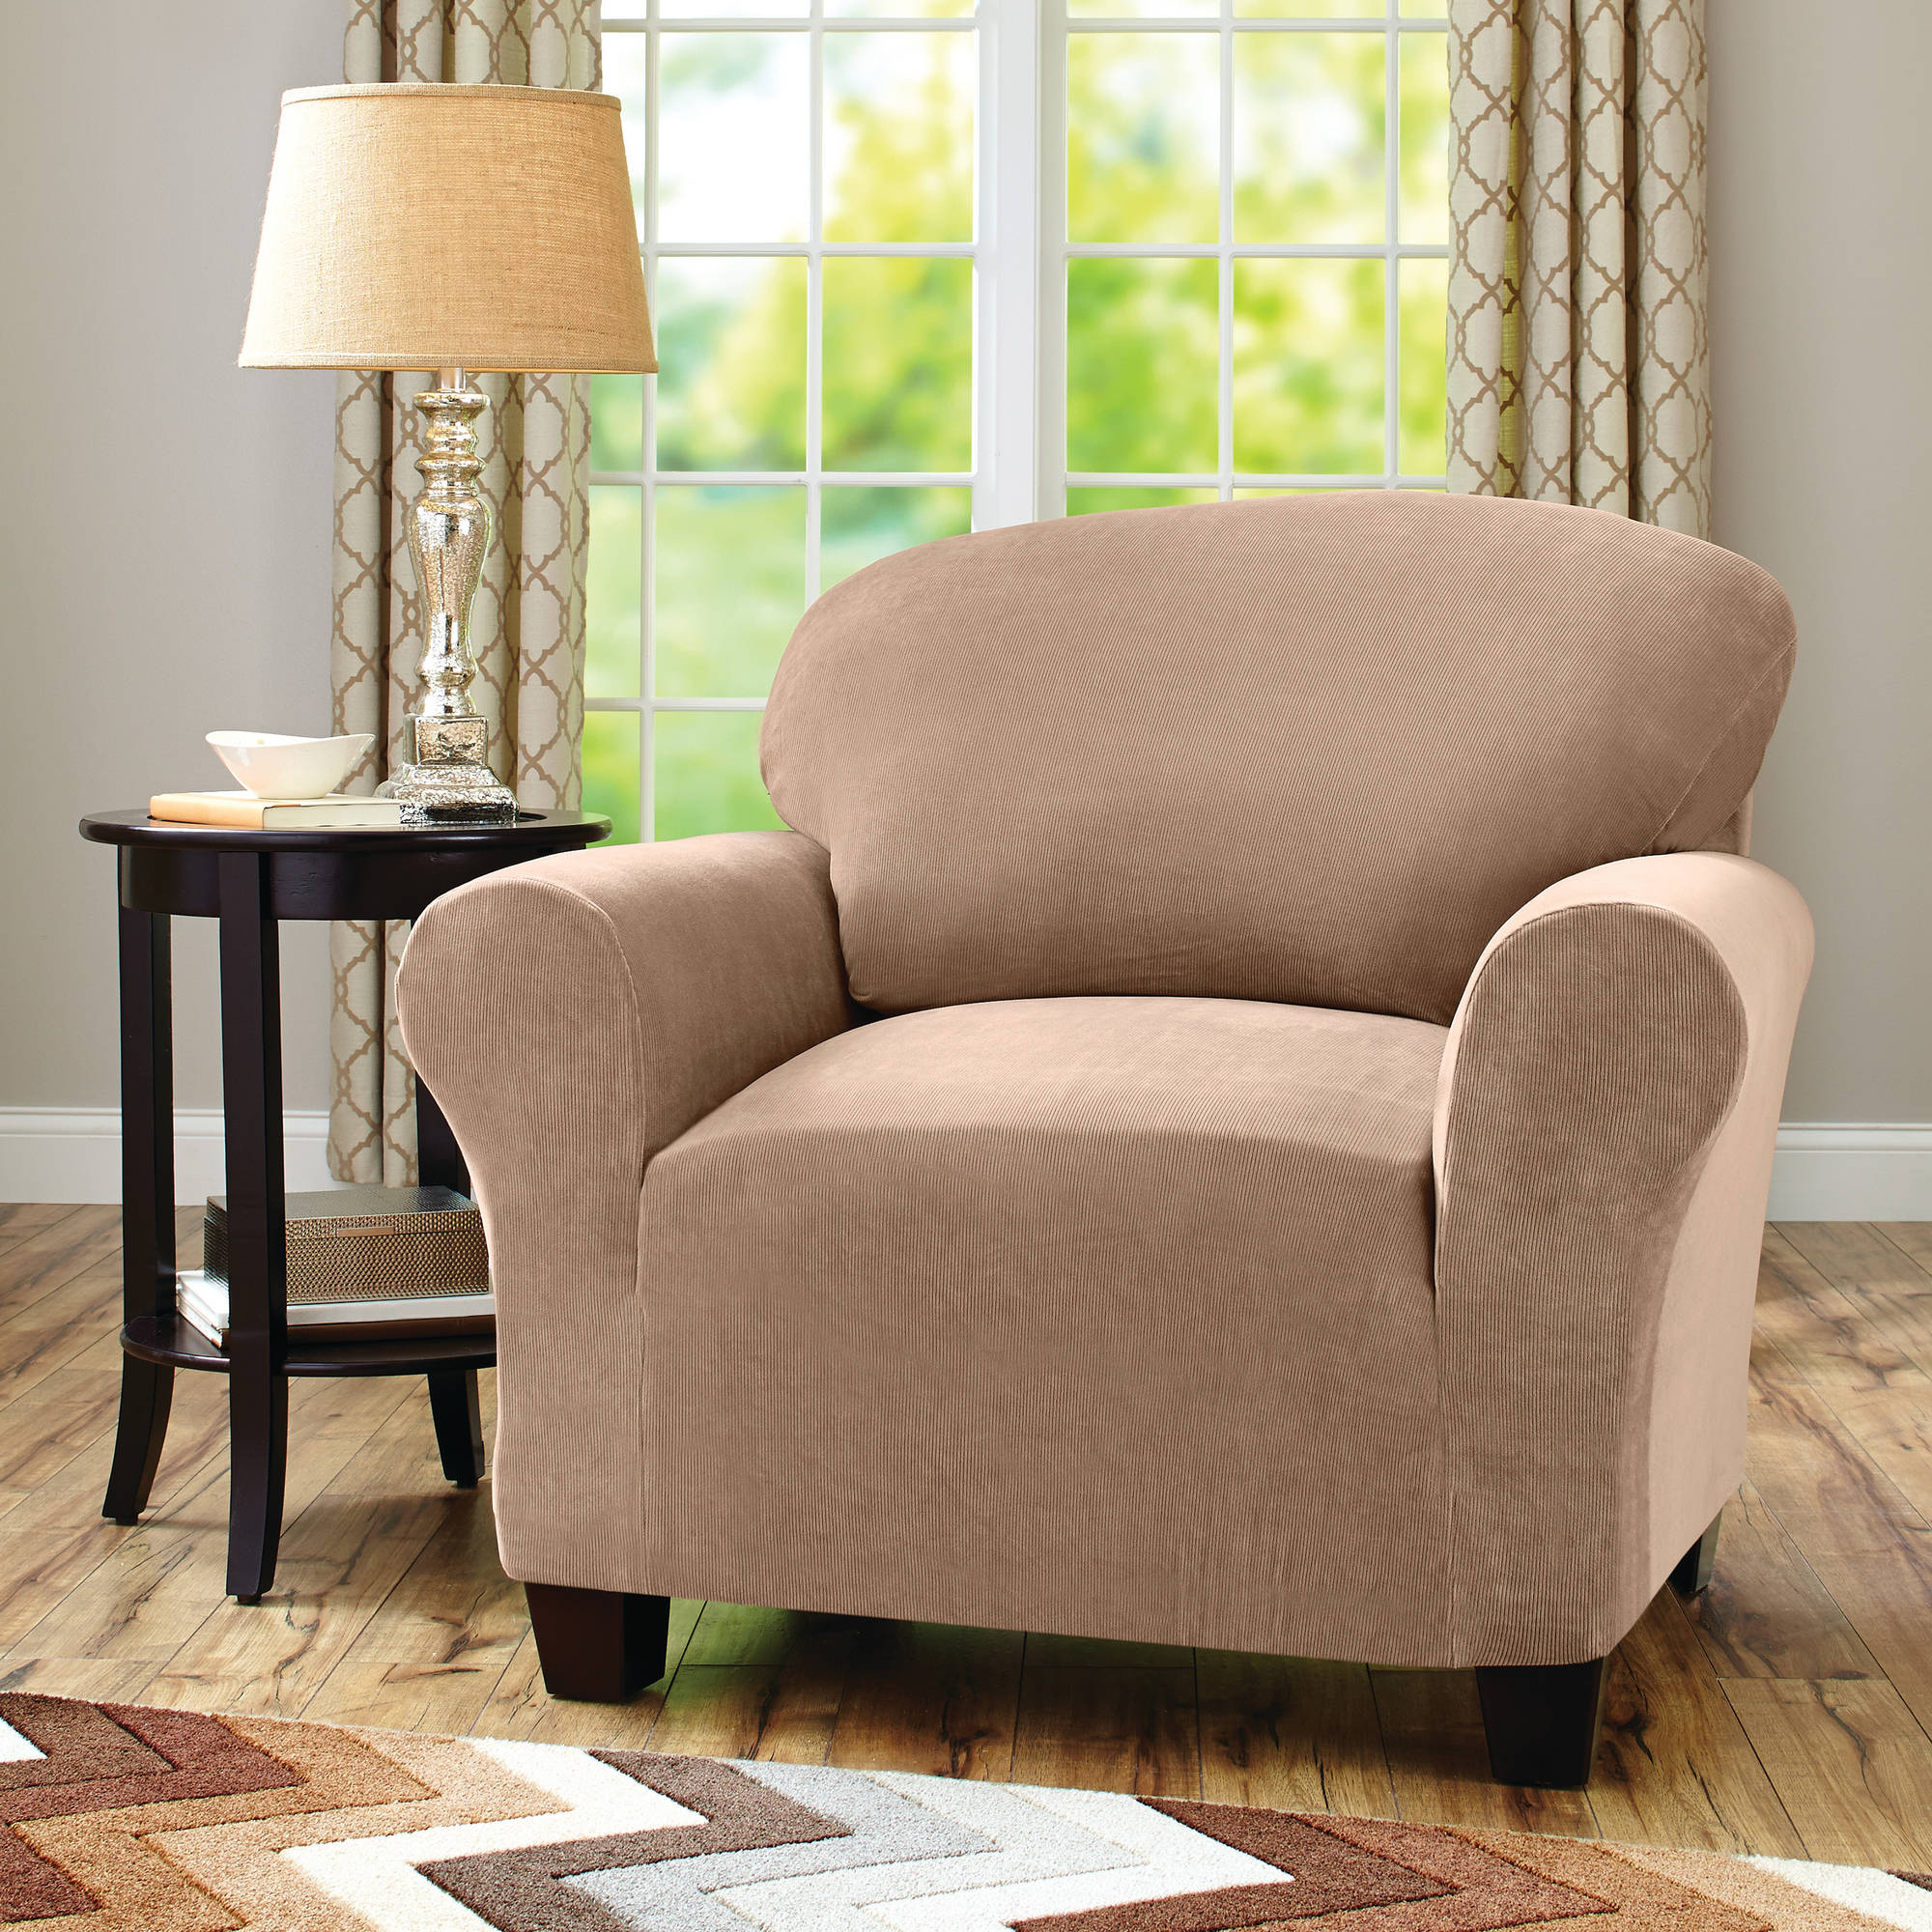 Better Homes And Gardens One Piece Stretch Fine Corduroy Chair In Well Known Sofa And Chair Slipcovers (View 1 of 20)